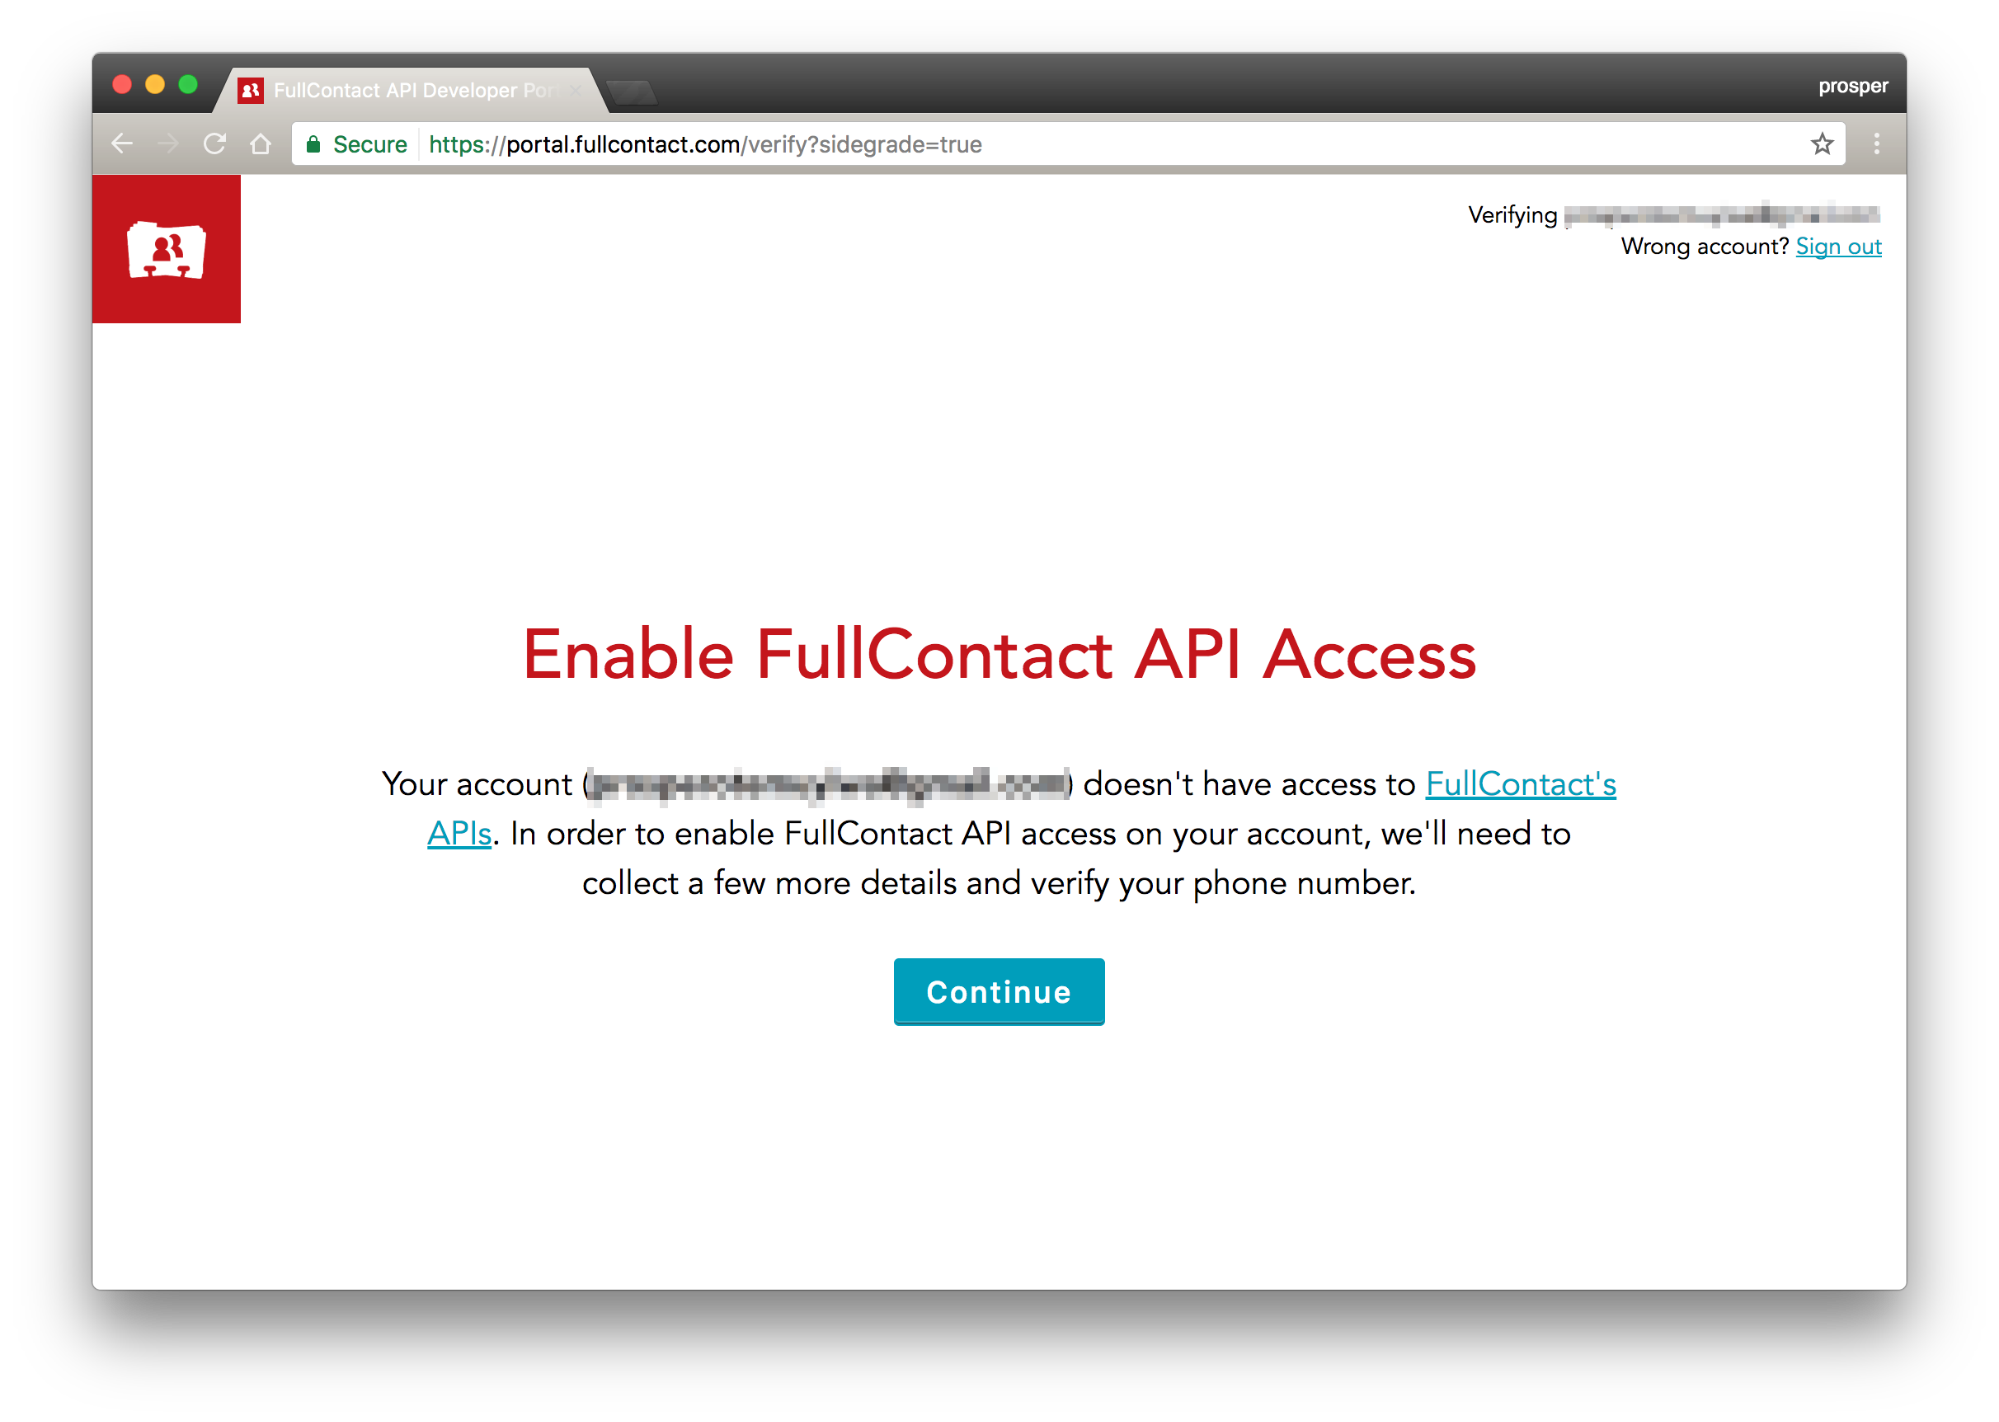 Enable API access